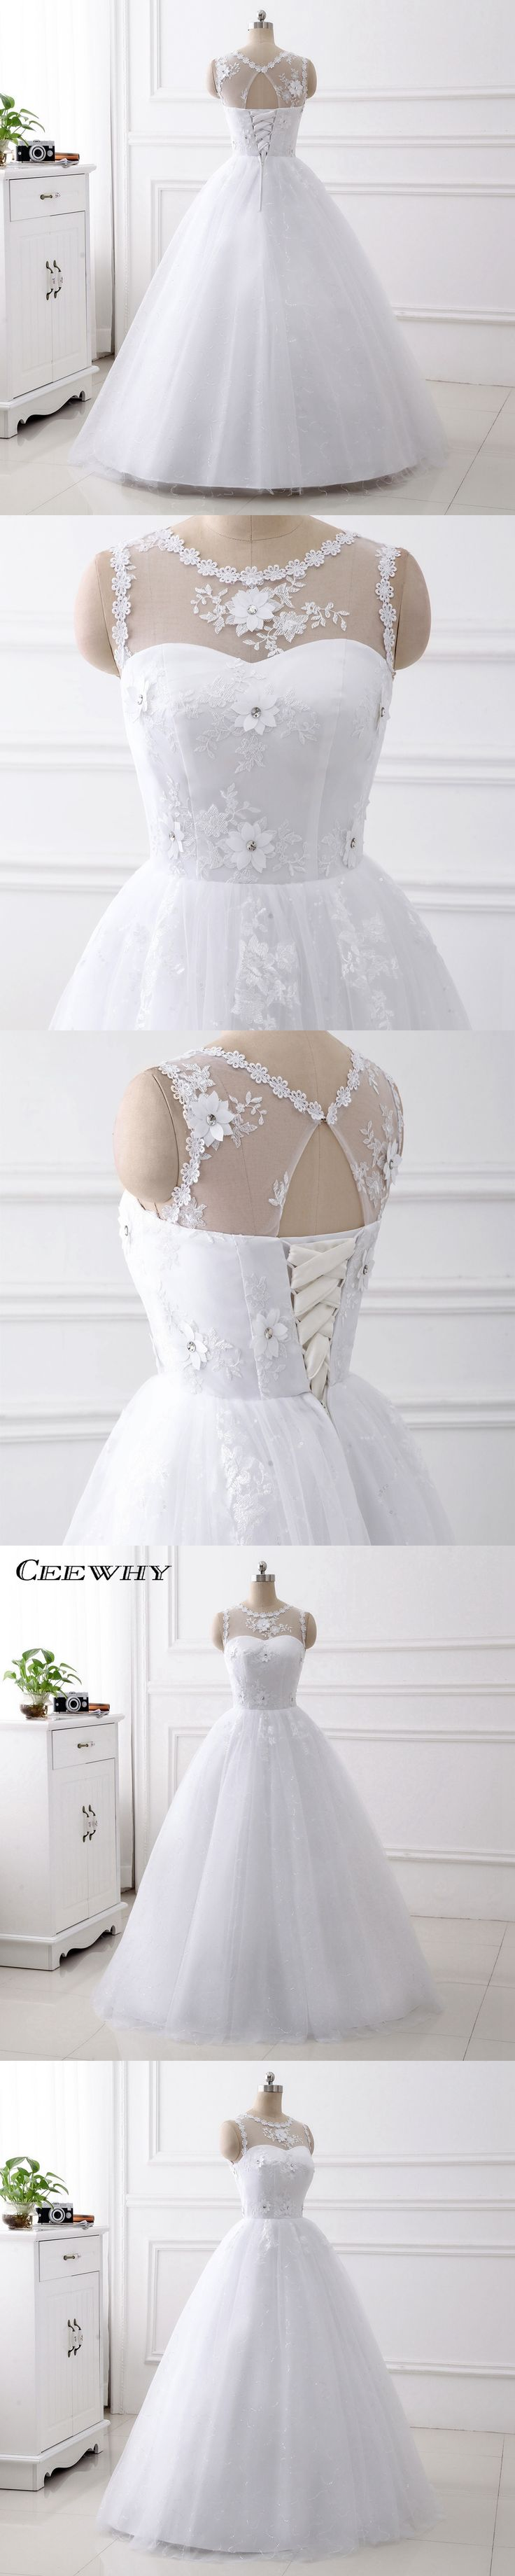 CEEWHY Sleeveless Illusion Collar Appliques Ball Gown Wedding Dresses Floor Length White Robe de Mariage Bride Dresses Crystal